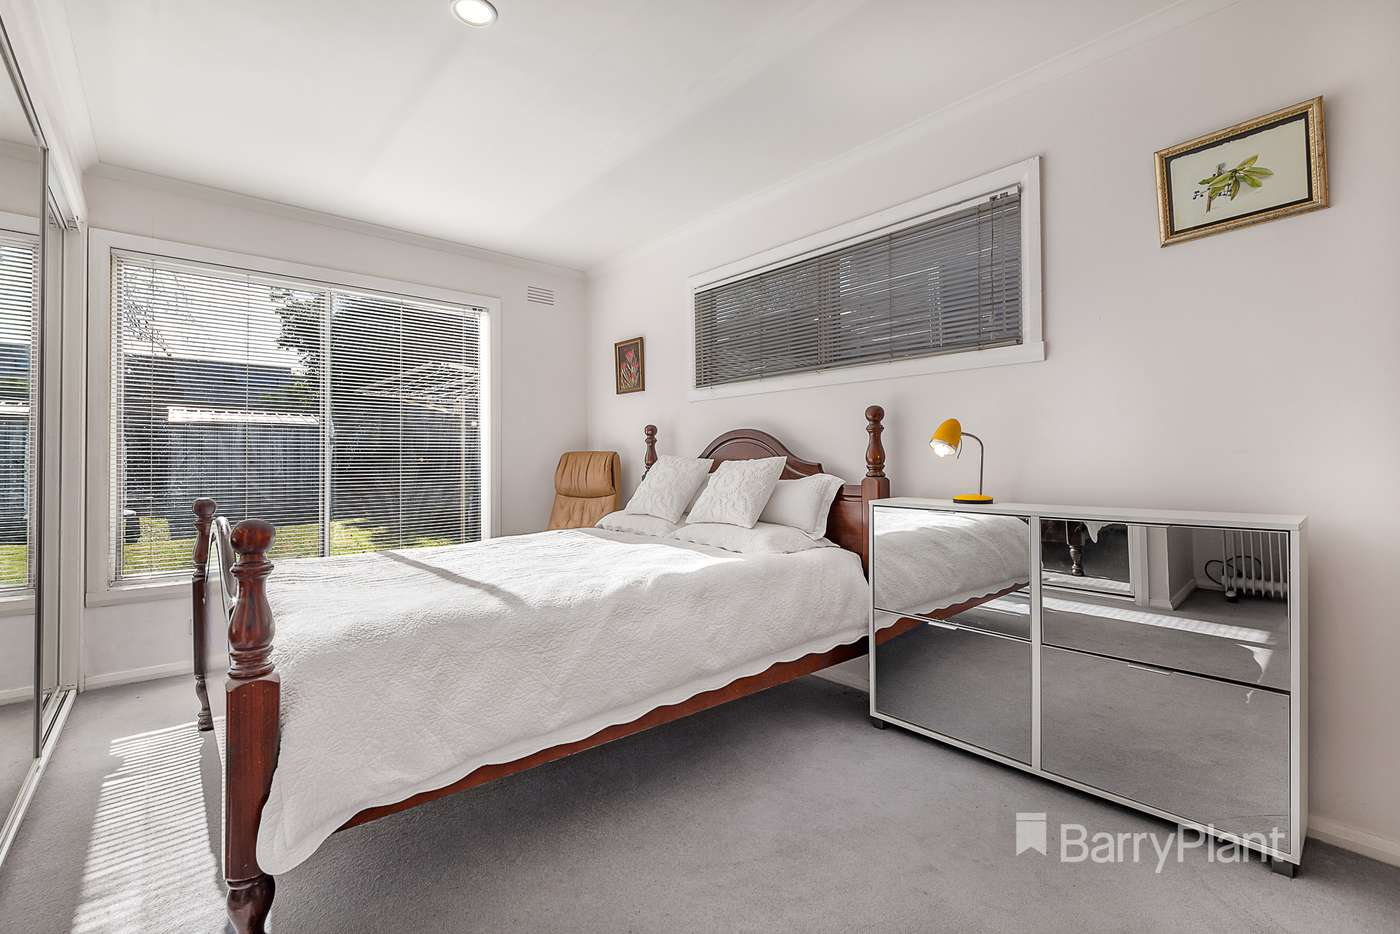 Fifth view of Homely house listing, 402 Balcombe Road, Beaumaris VIC 3193